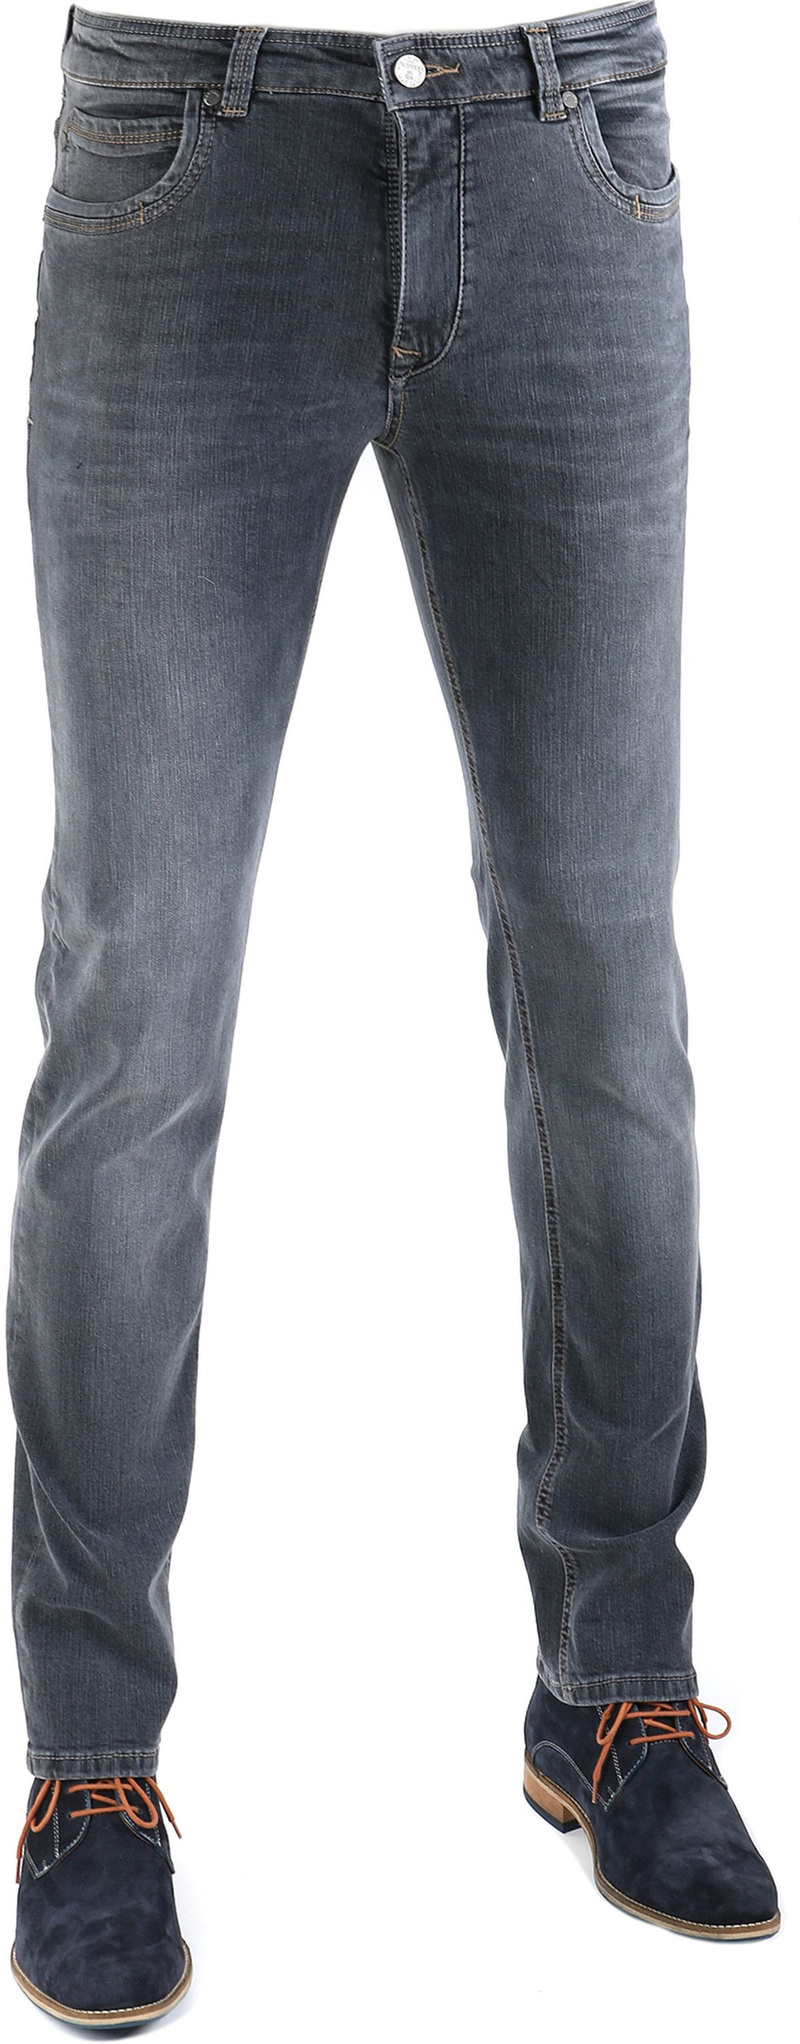 Gardeur Batu Stretch Jeans Grey photo 0